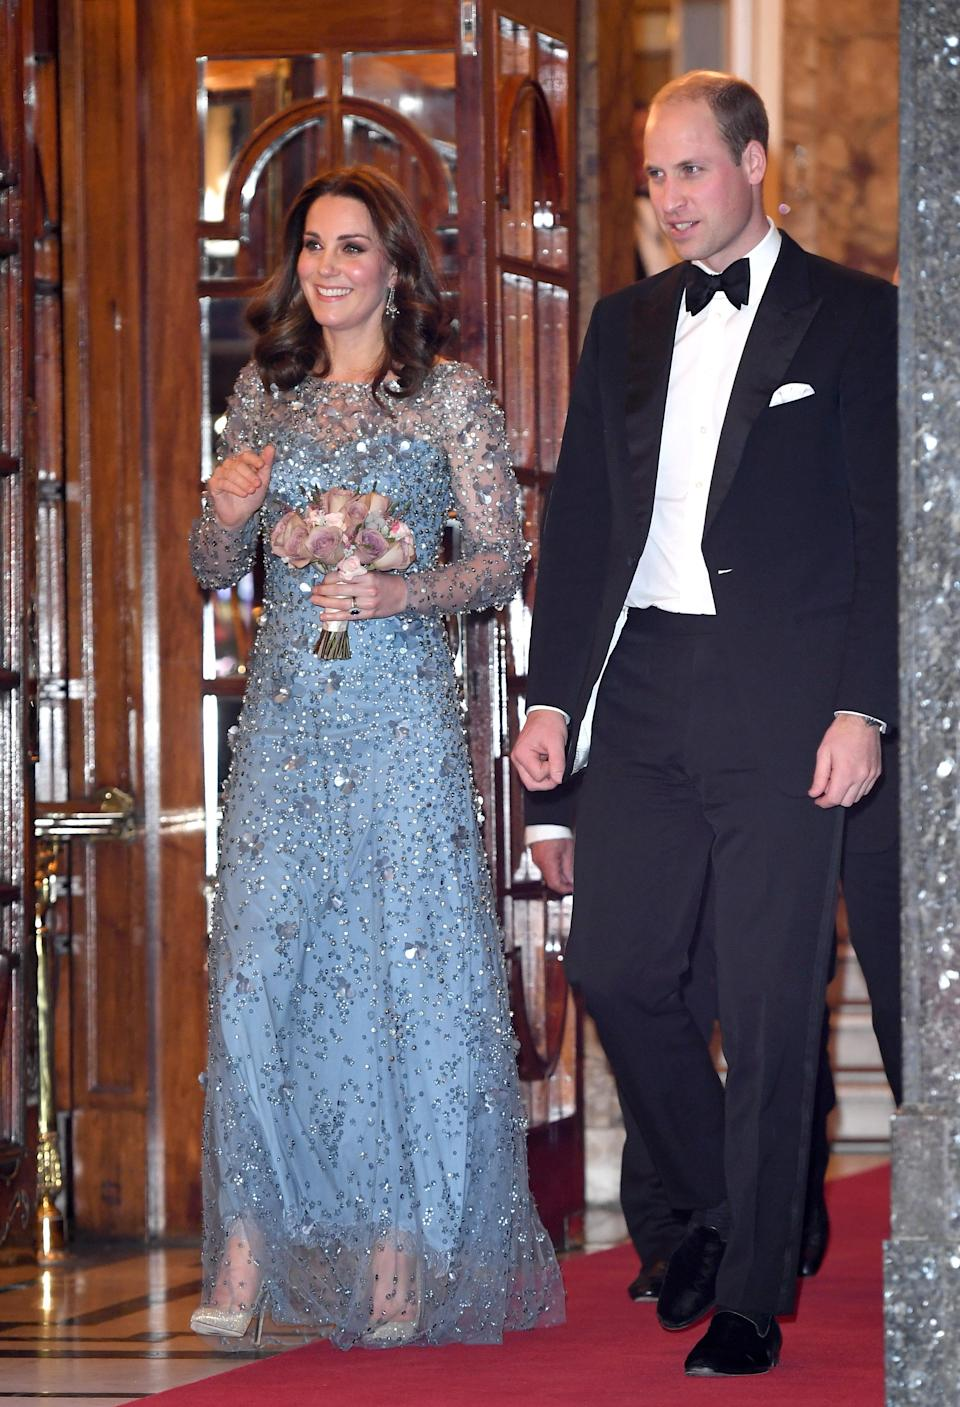 <p>Pregnant with Prince Louis at the time, the Duchess of Cambridge demonstrated royal maternity style in a heavily embellished bespoke Jenny Packham dress. To accessorise the red carpet ensemble, the 37-year-old chose Oscar de la Renta shoes and a £325 clutch also by Jenny Packham. <em>[Photo: Getty]</em> </p>